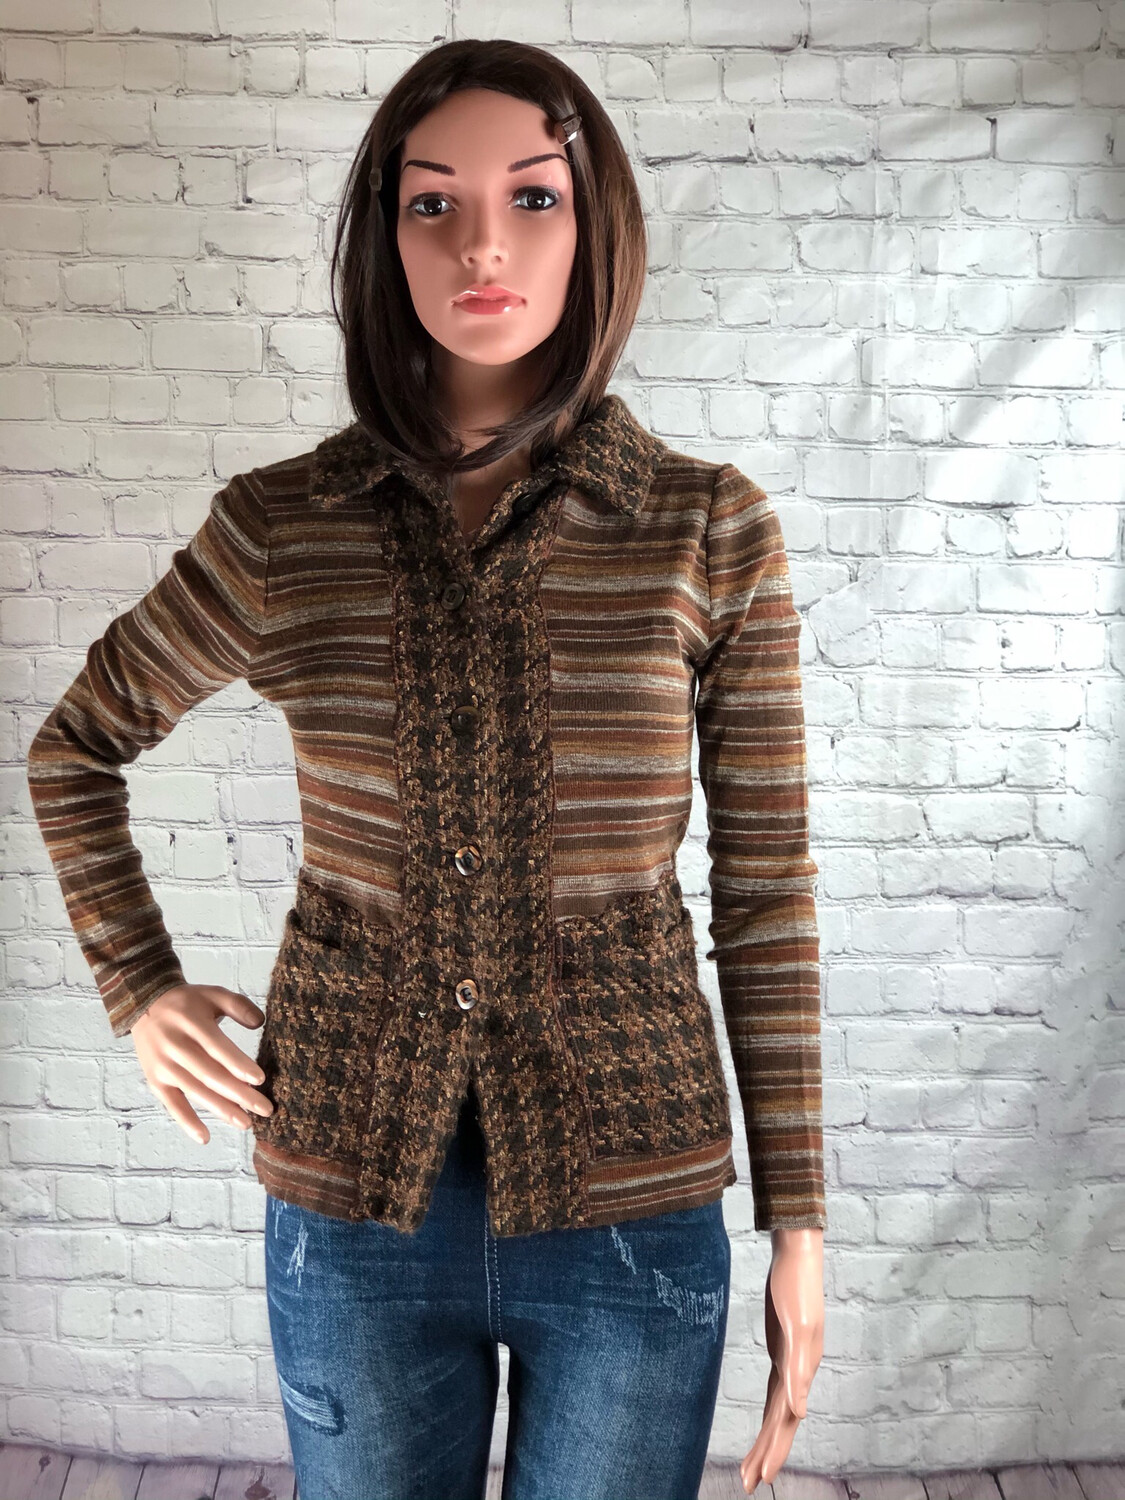 Retro Vintage Tweed Jacket Makeover Recycled Button Up Sweater Jacket Lightweight size S